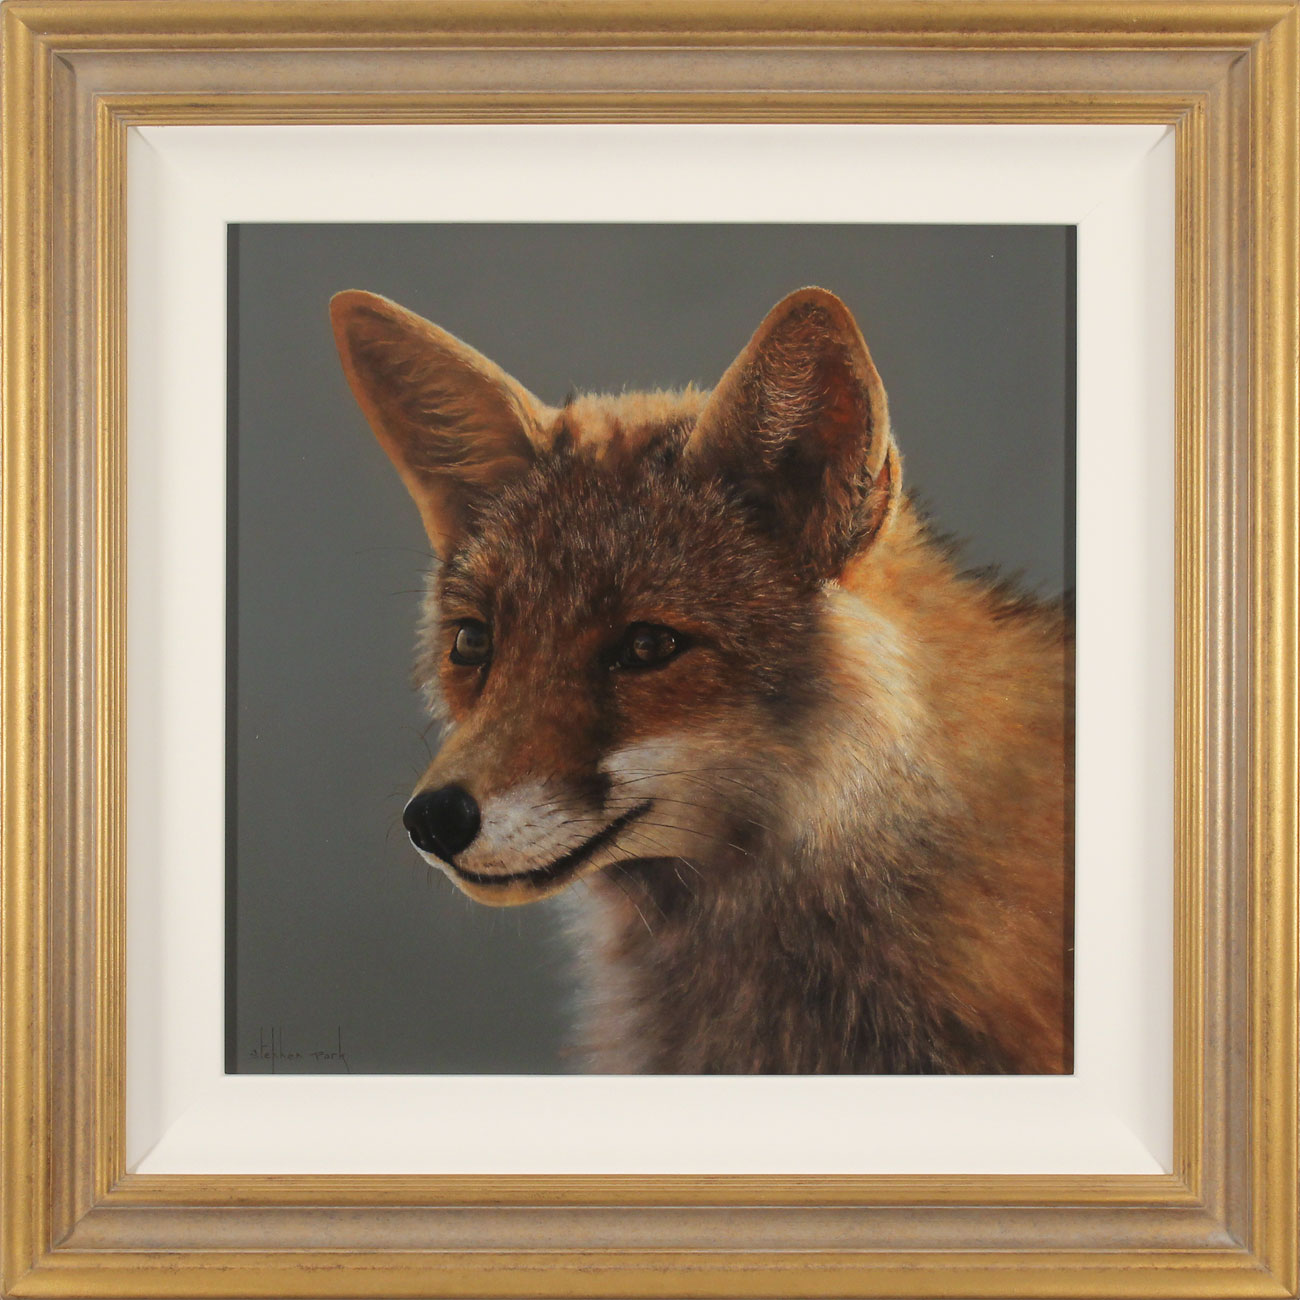 Stephen Park, Original oil painting on panel, Fox, click to enlarge